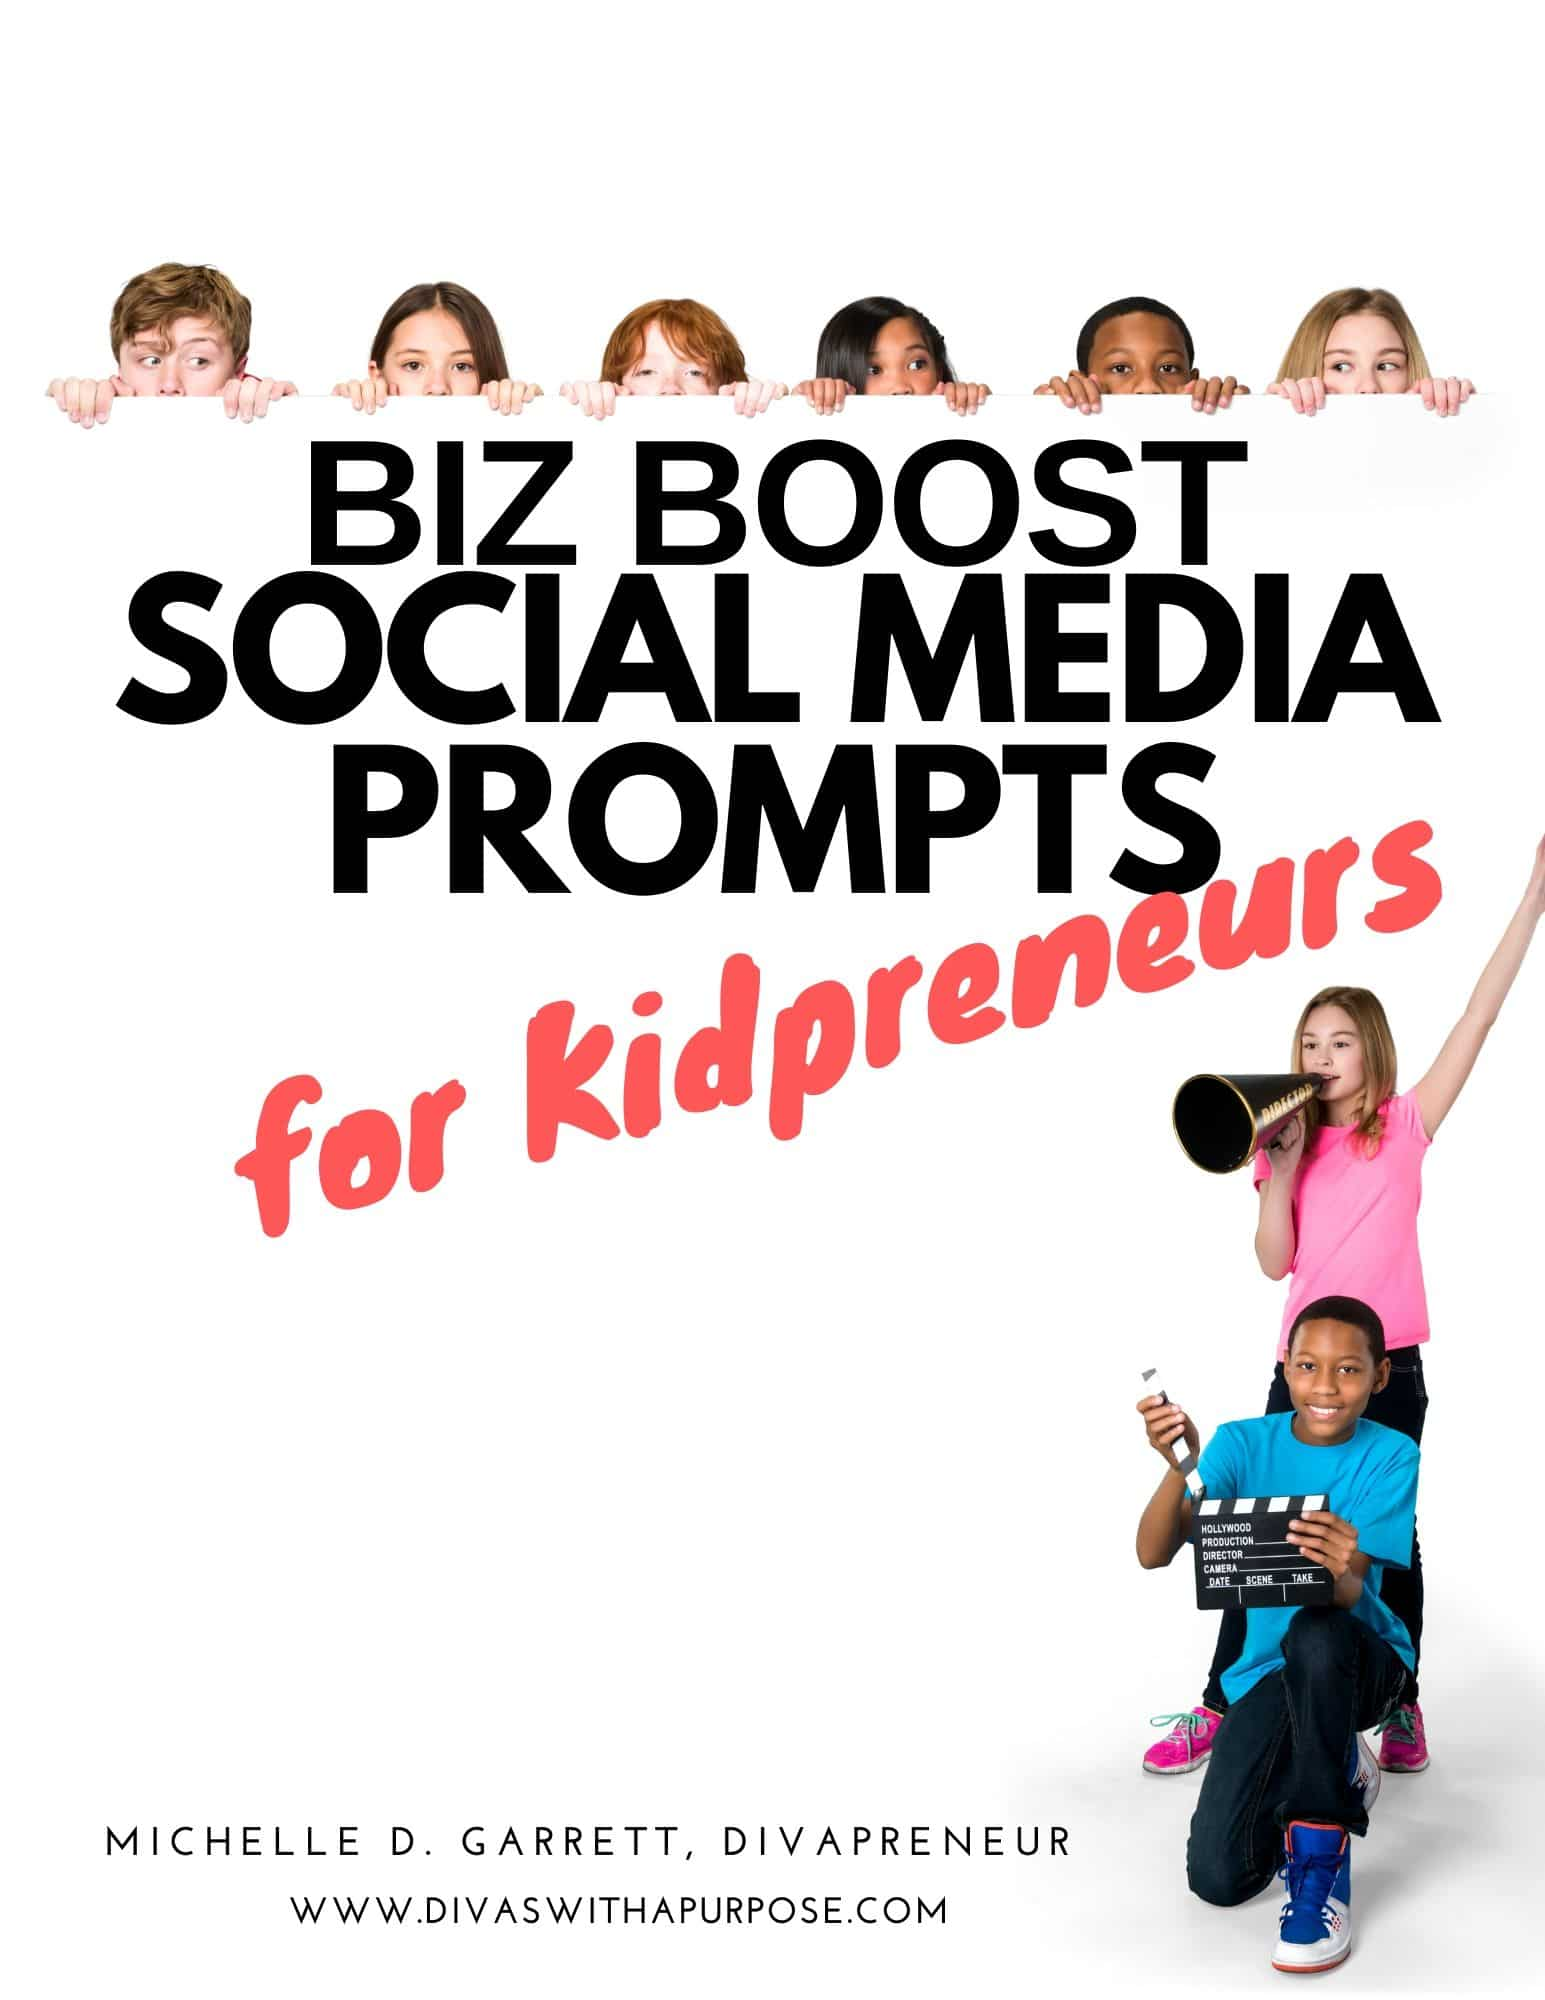 Kidpreneurs Social Media Prompts and Ideas